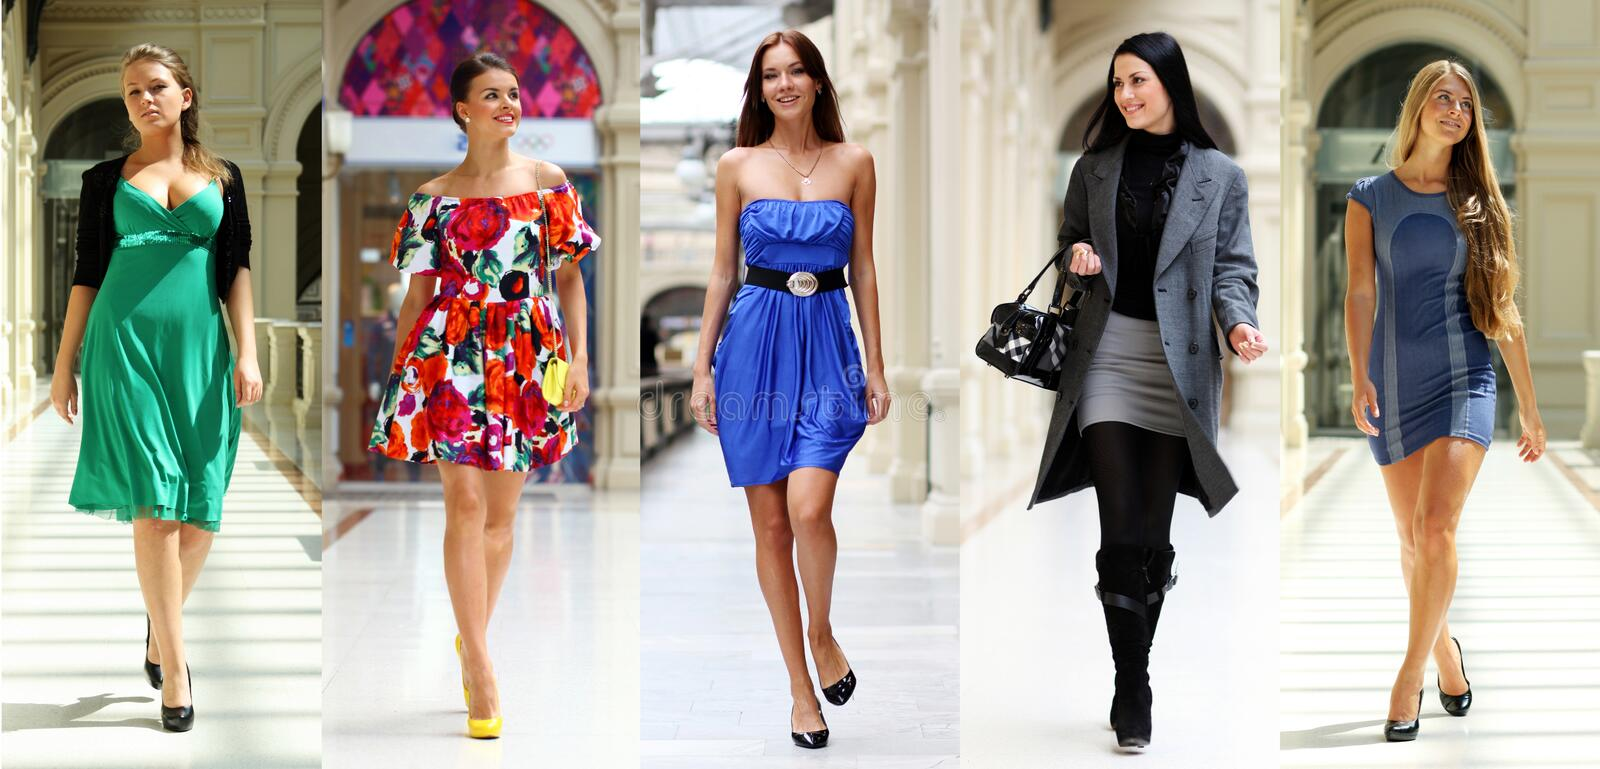 Collage five fashion young women. In shop royalty free stock images